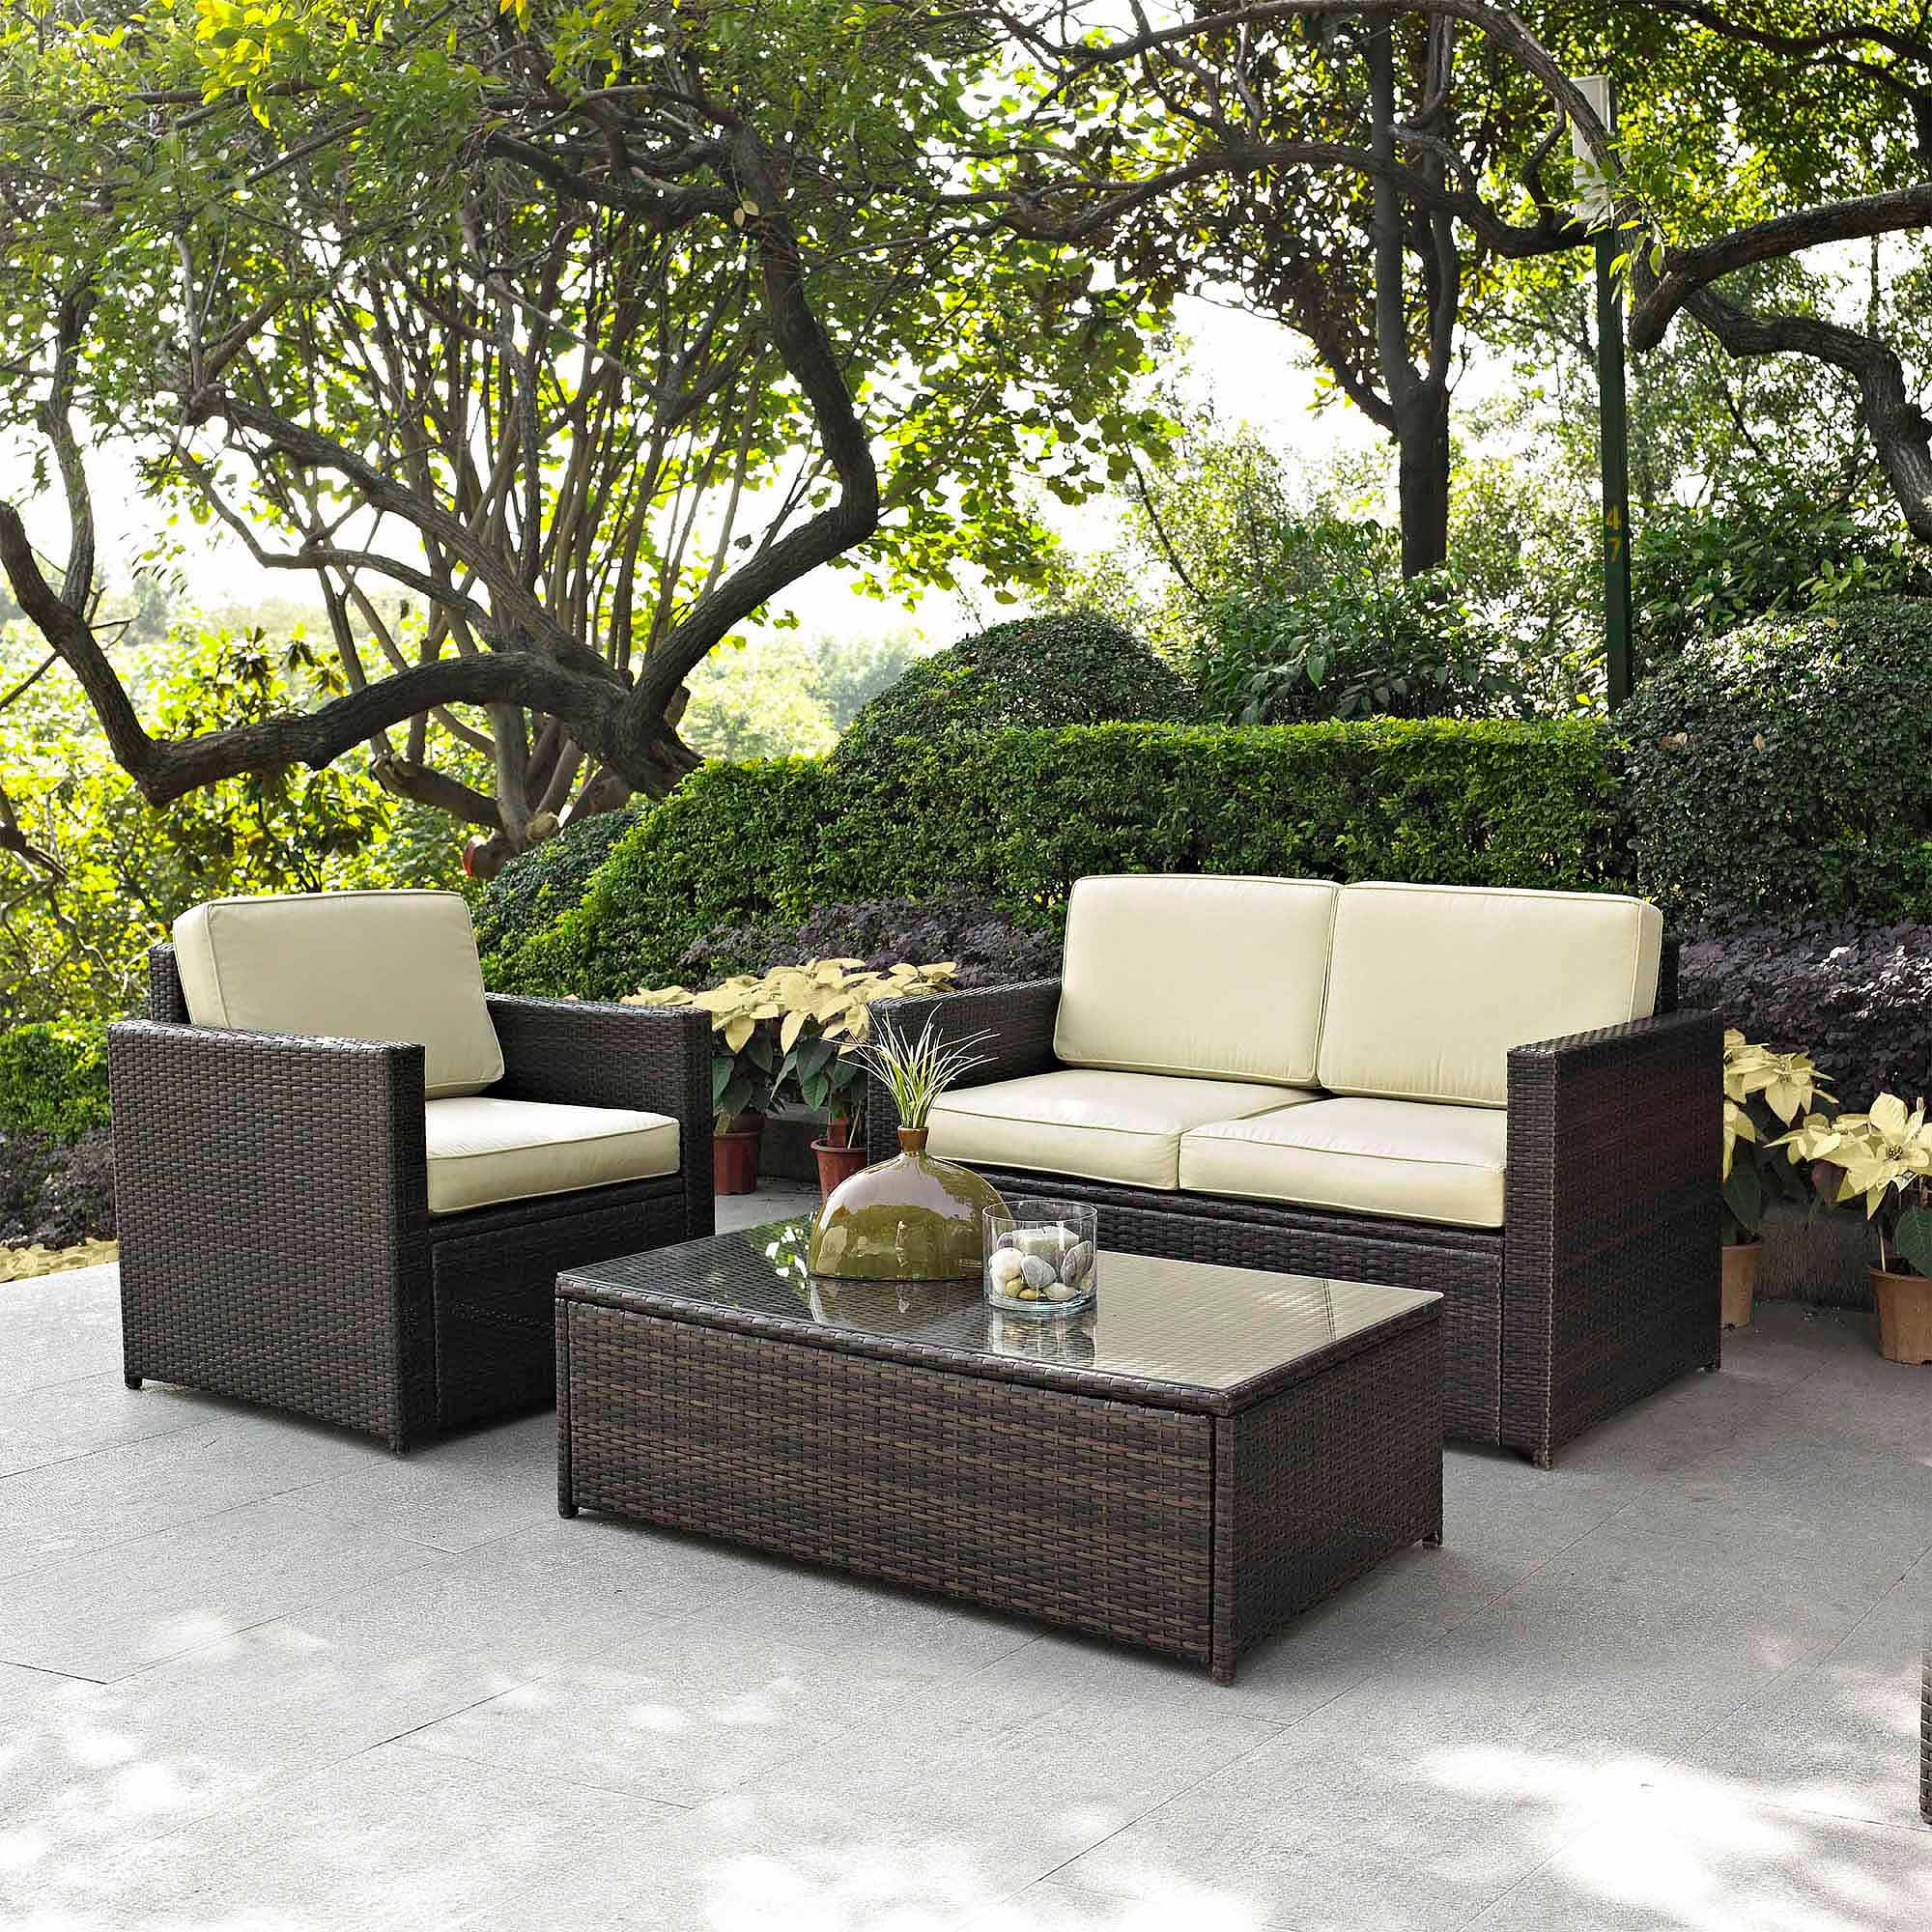 Crosley Furniture Palm Harbor 3 Piece Outdoor Wicker Seating Set